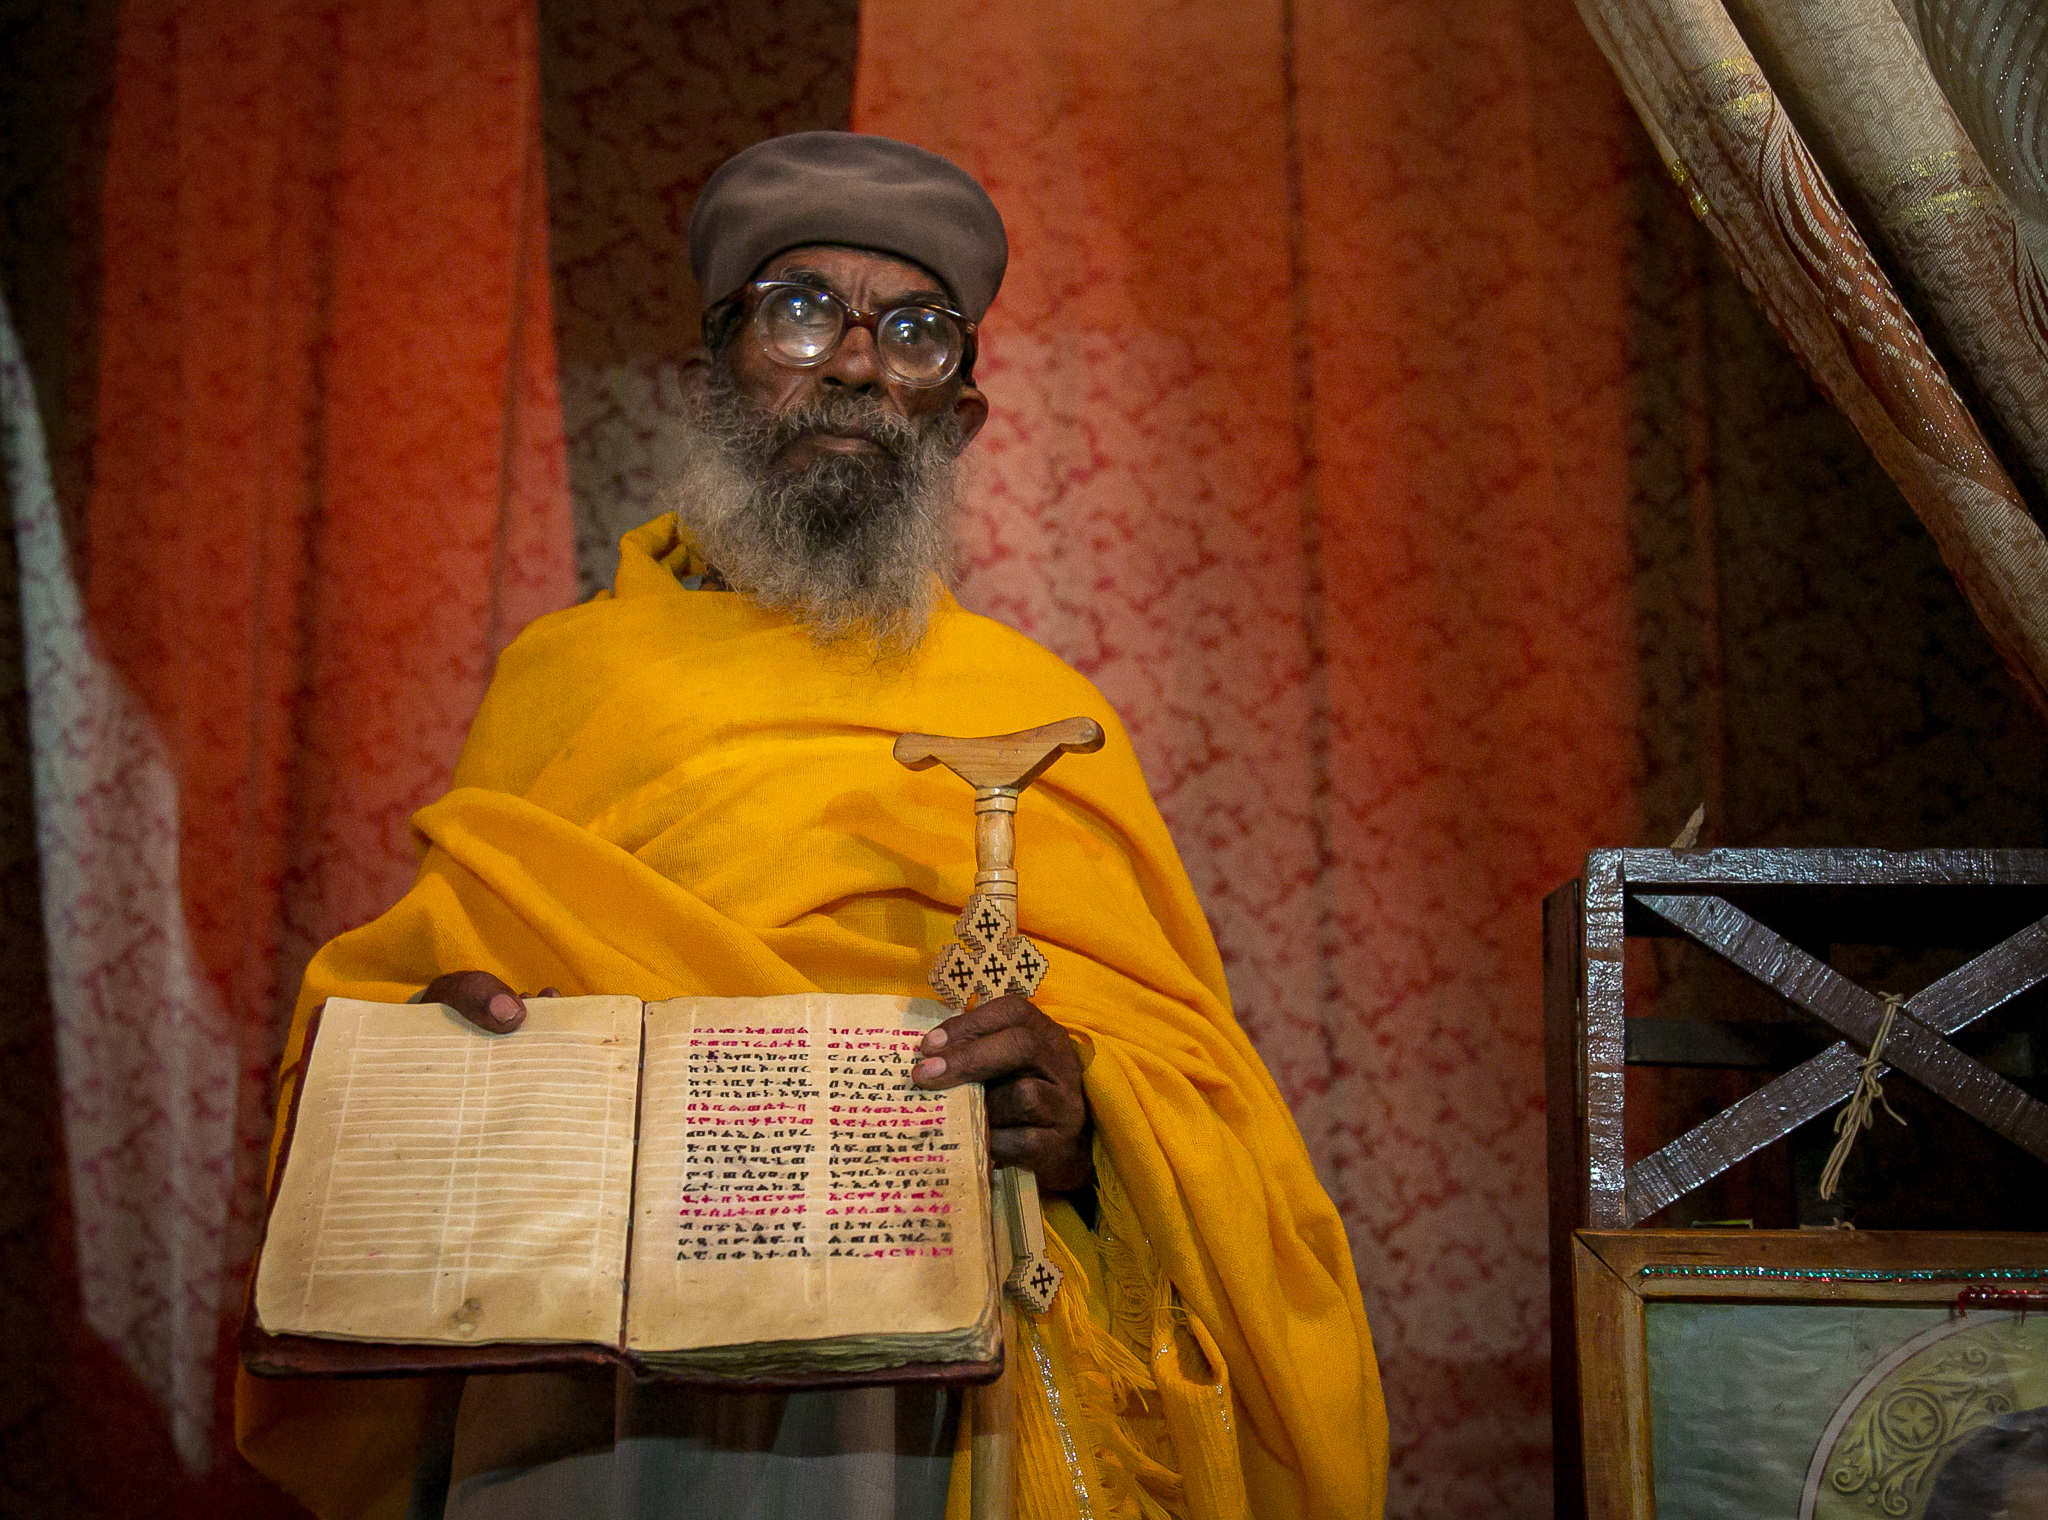 Inside, the priest displays an ancient parchment of scriptures in the Amharic language, hand-copied a hundred years before the Bible was translated into English. // photo © Kim I. Mott